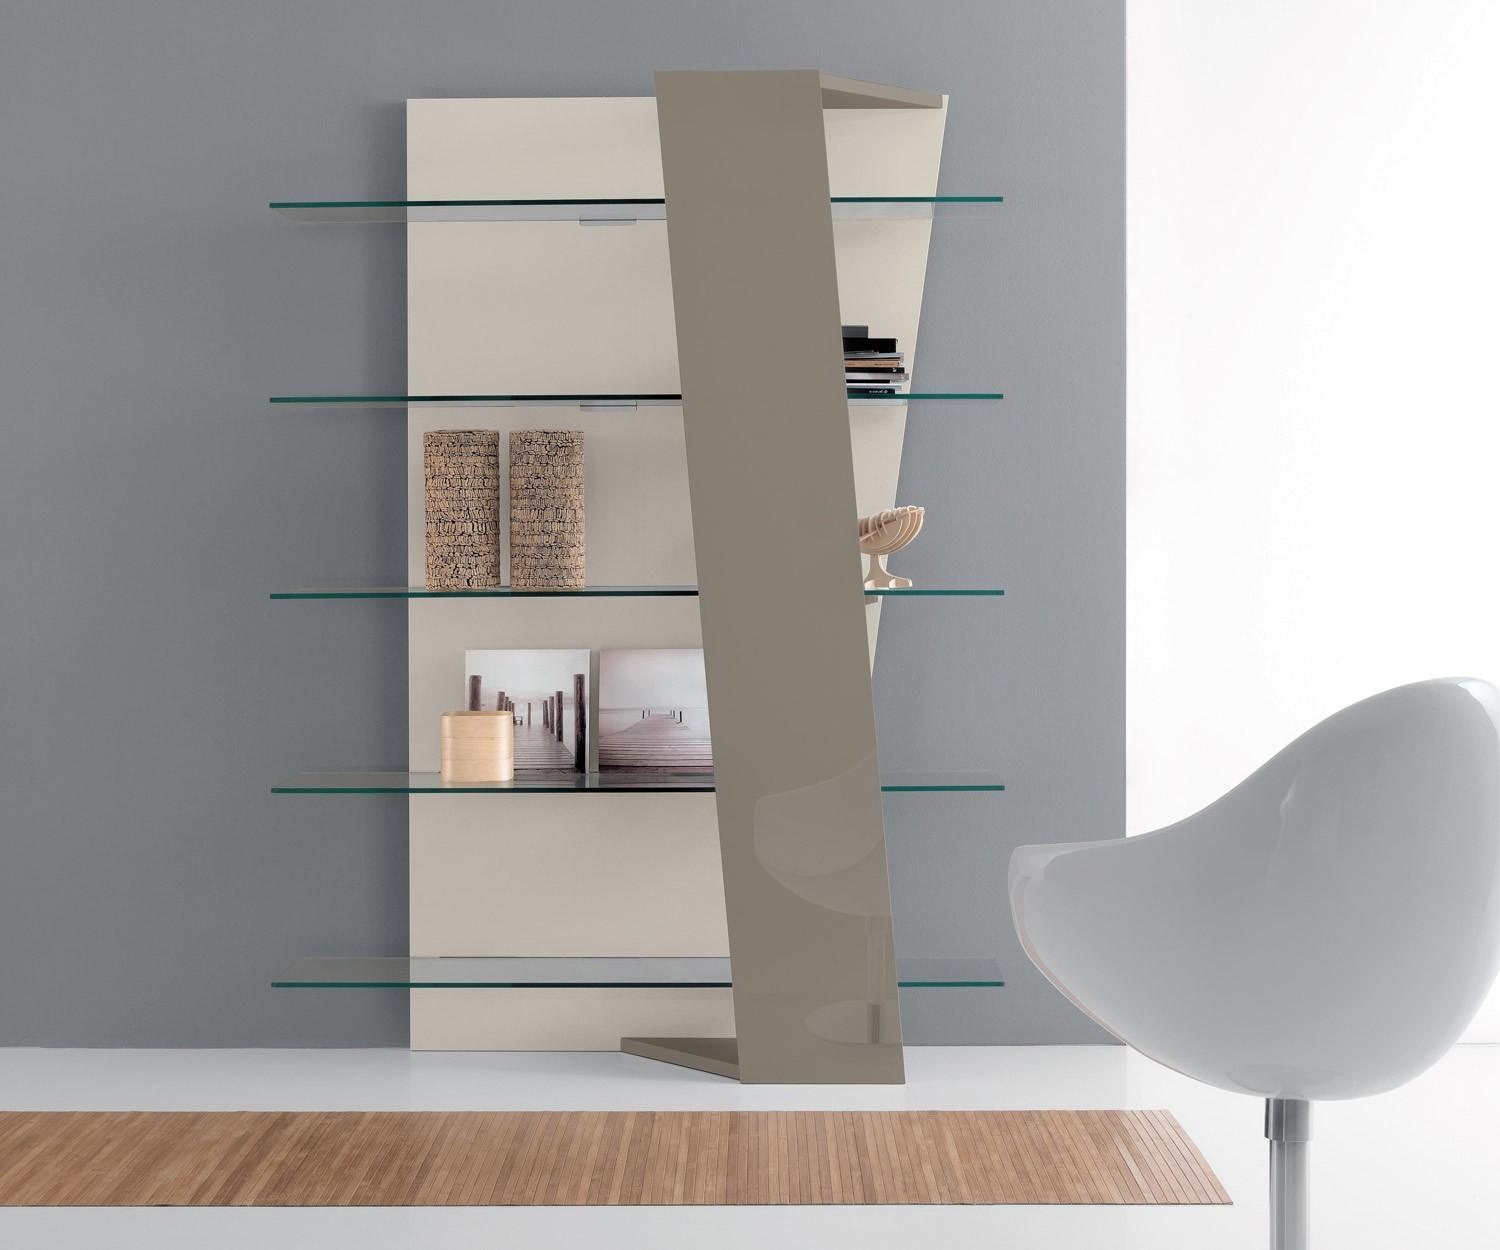 Glas Tische Compar Design Bücherregal Book Glas Walnuss